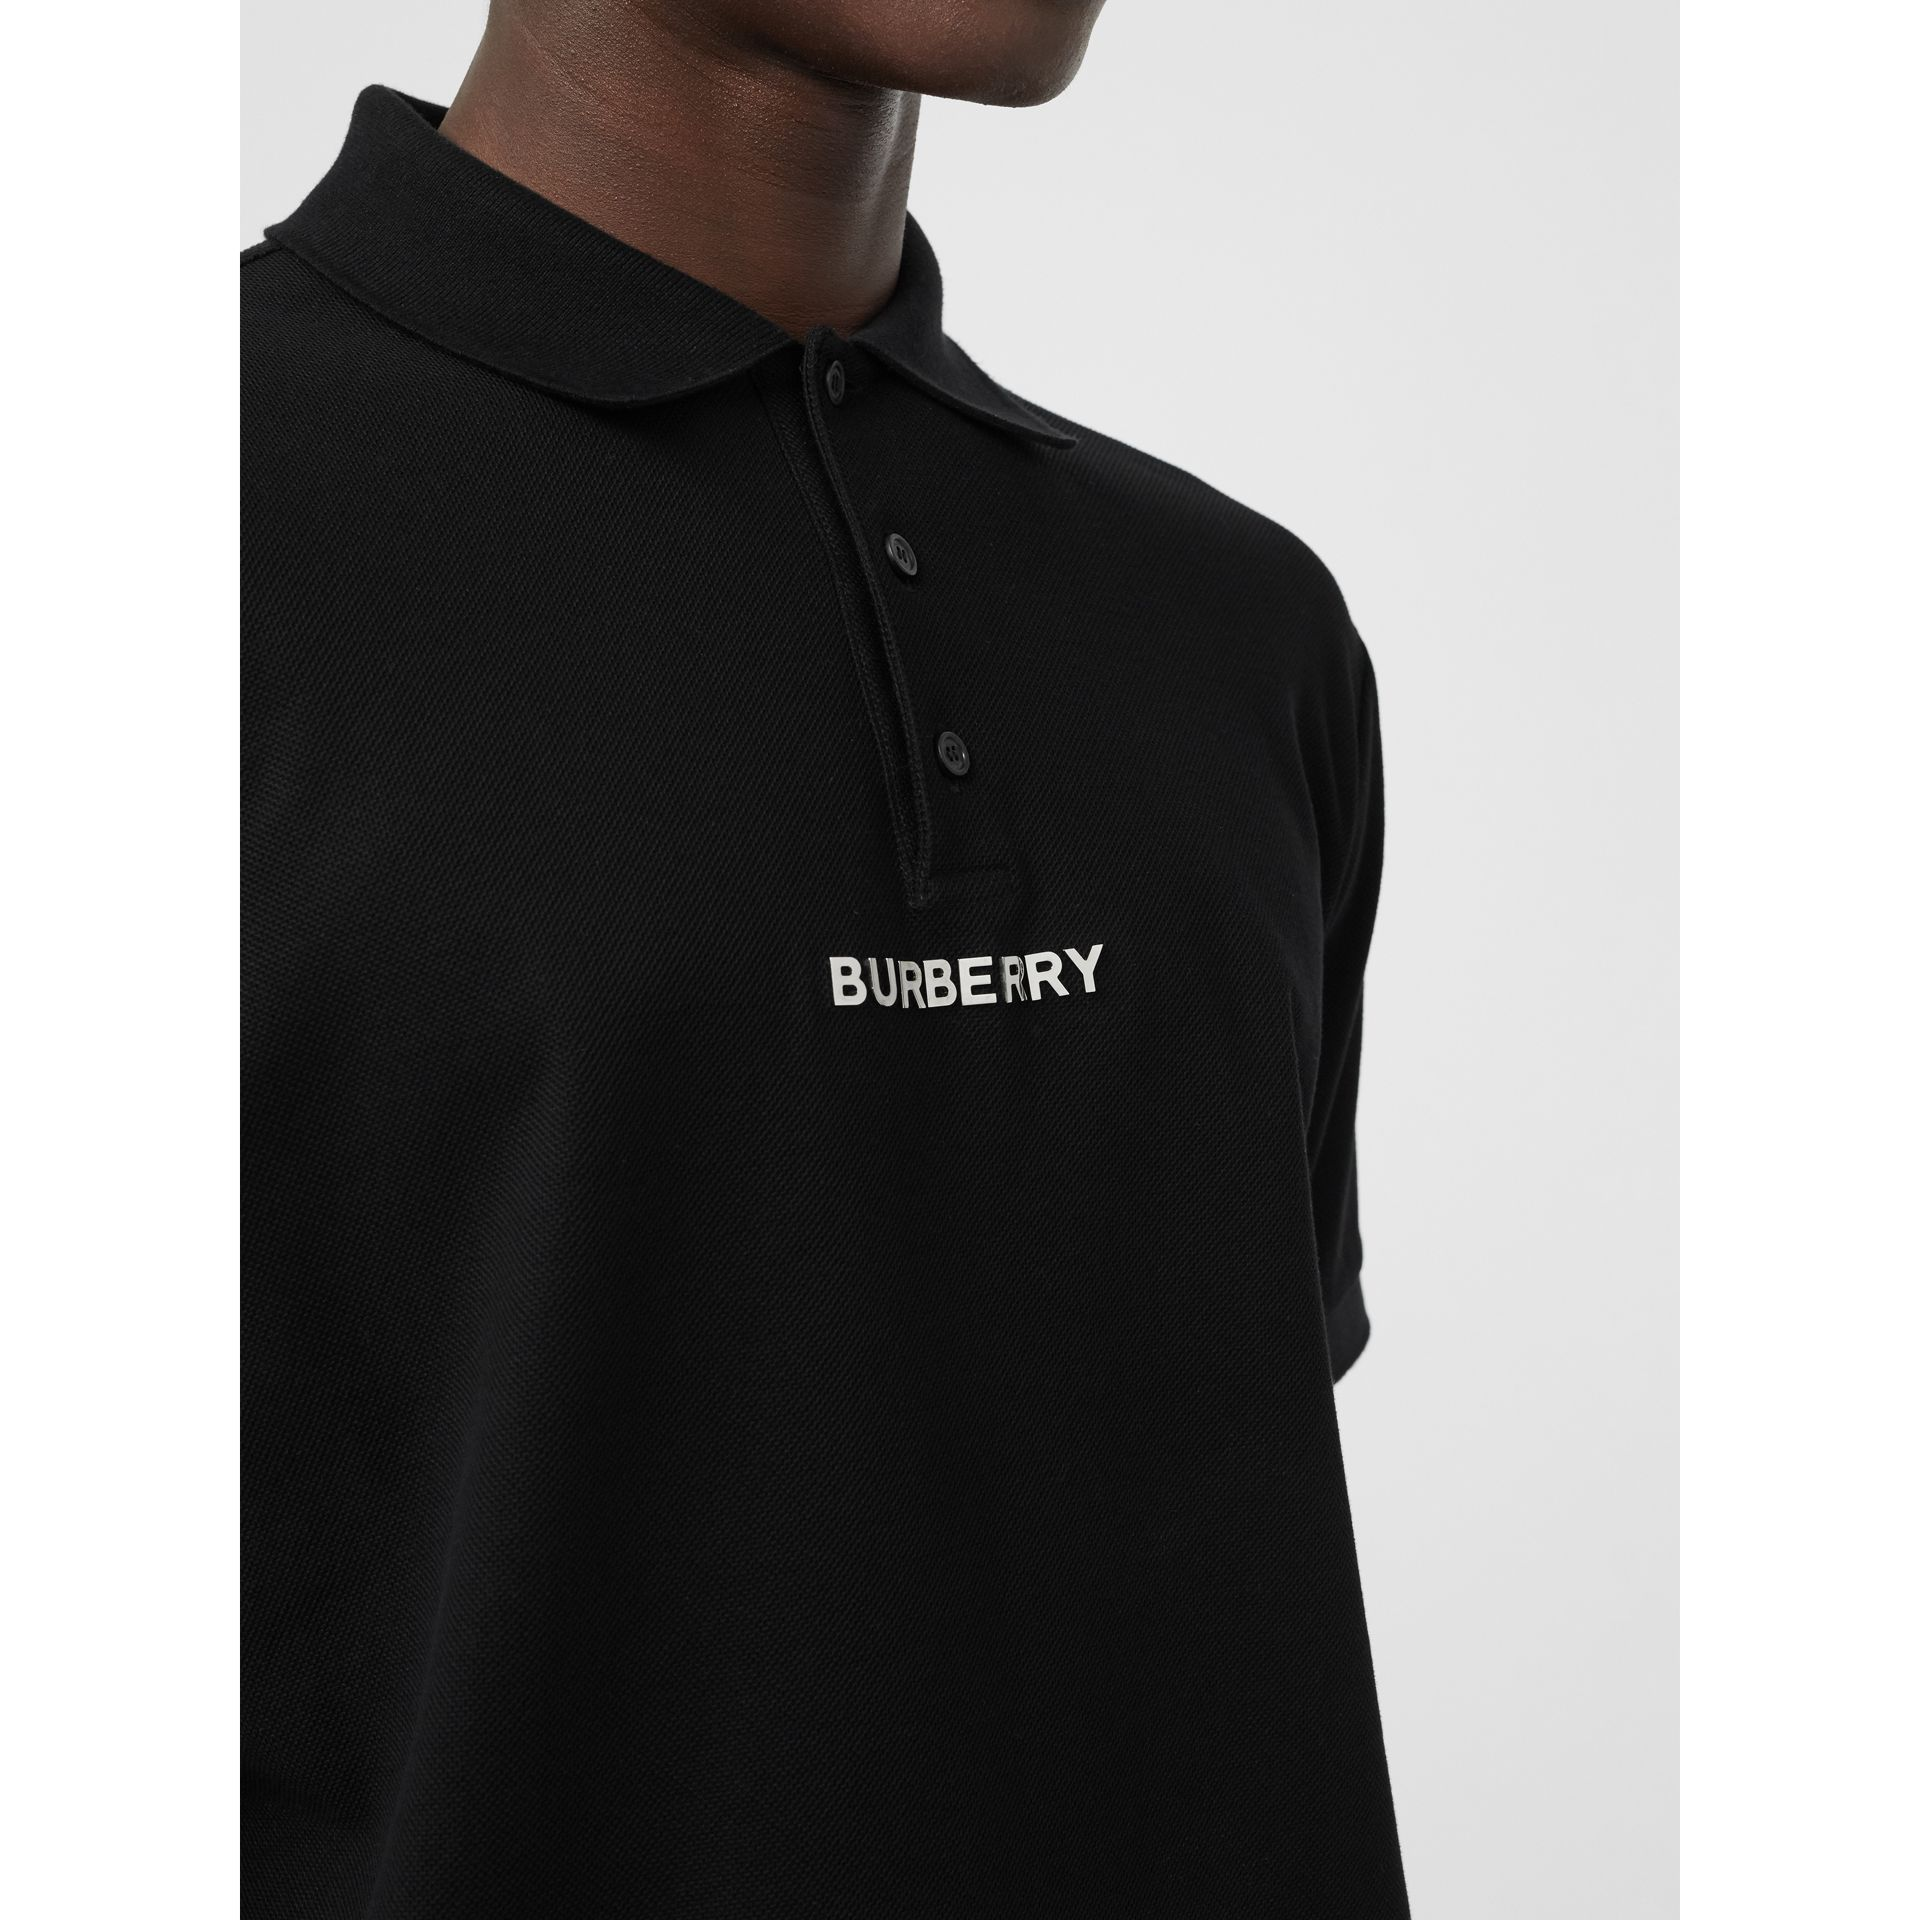 Embellished Logo Polo Shirt in Black - Men | Burberry - gallery image 1